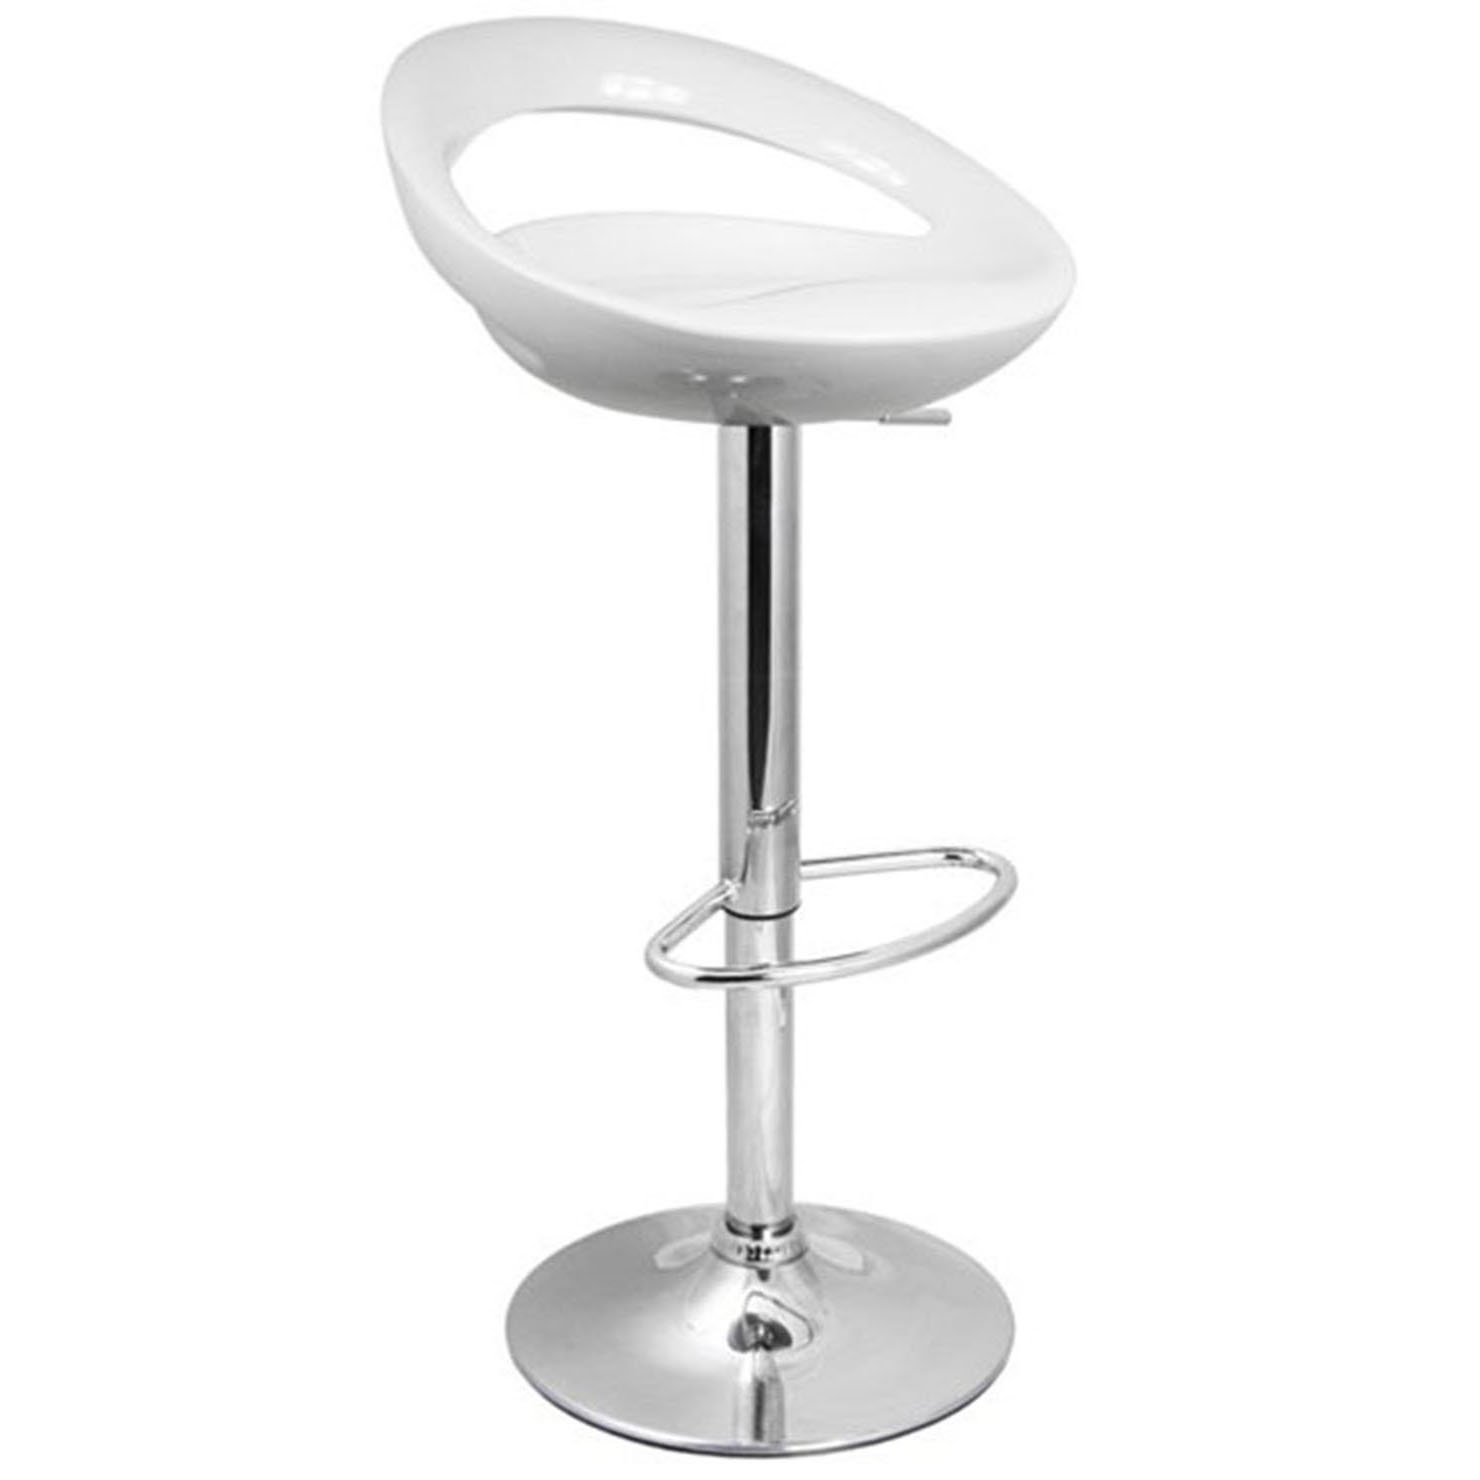 Sorrento Swivel Bar Stool - White